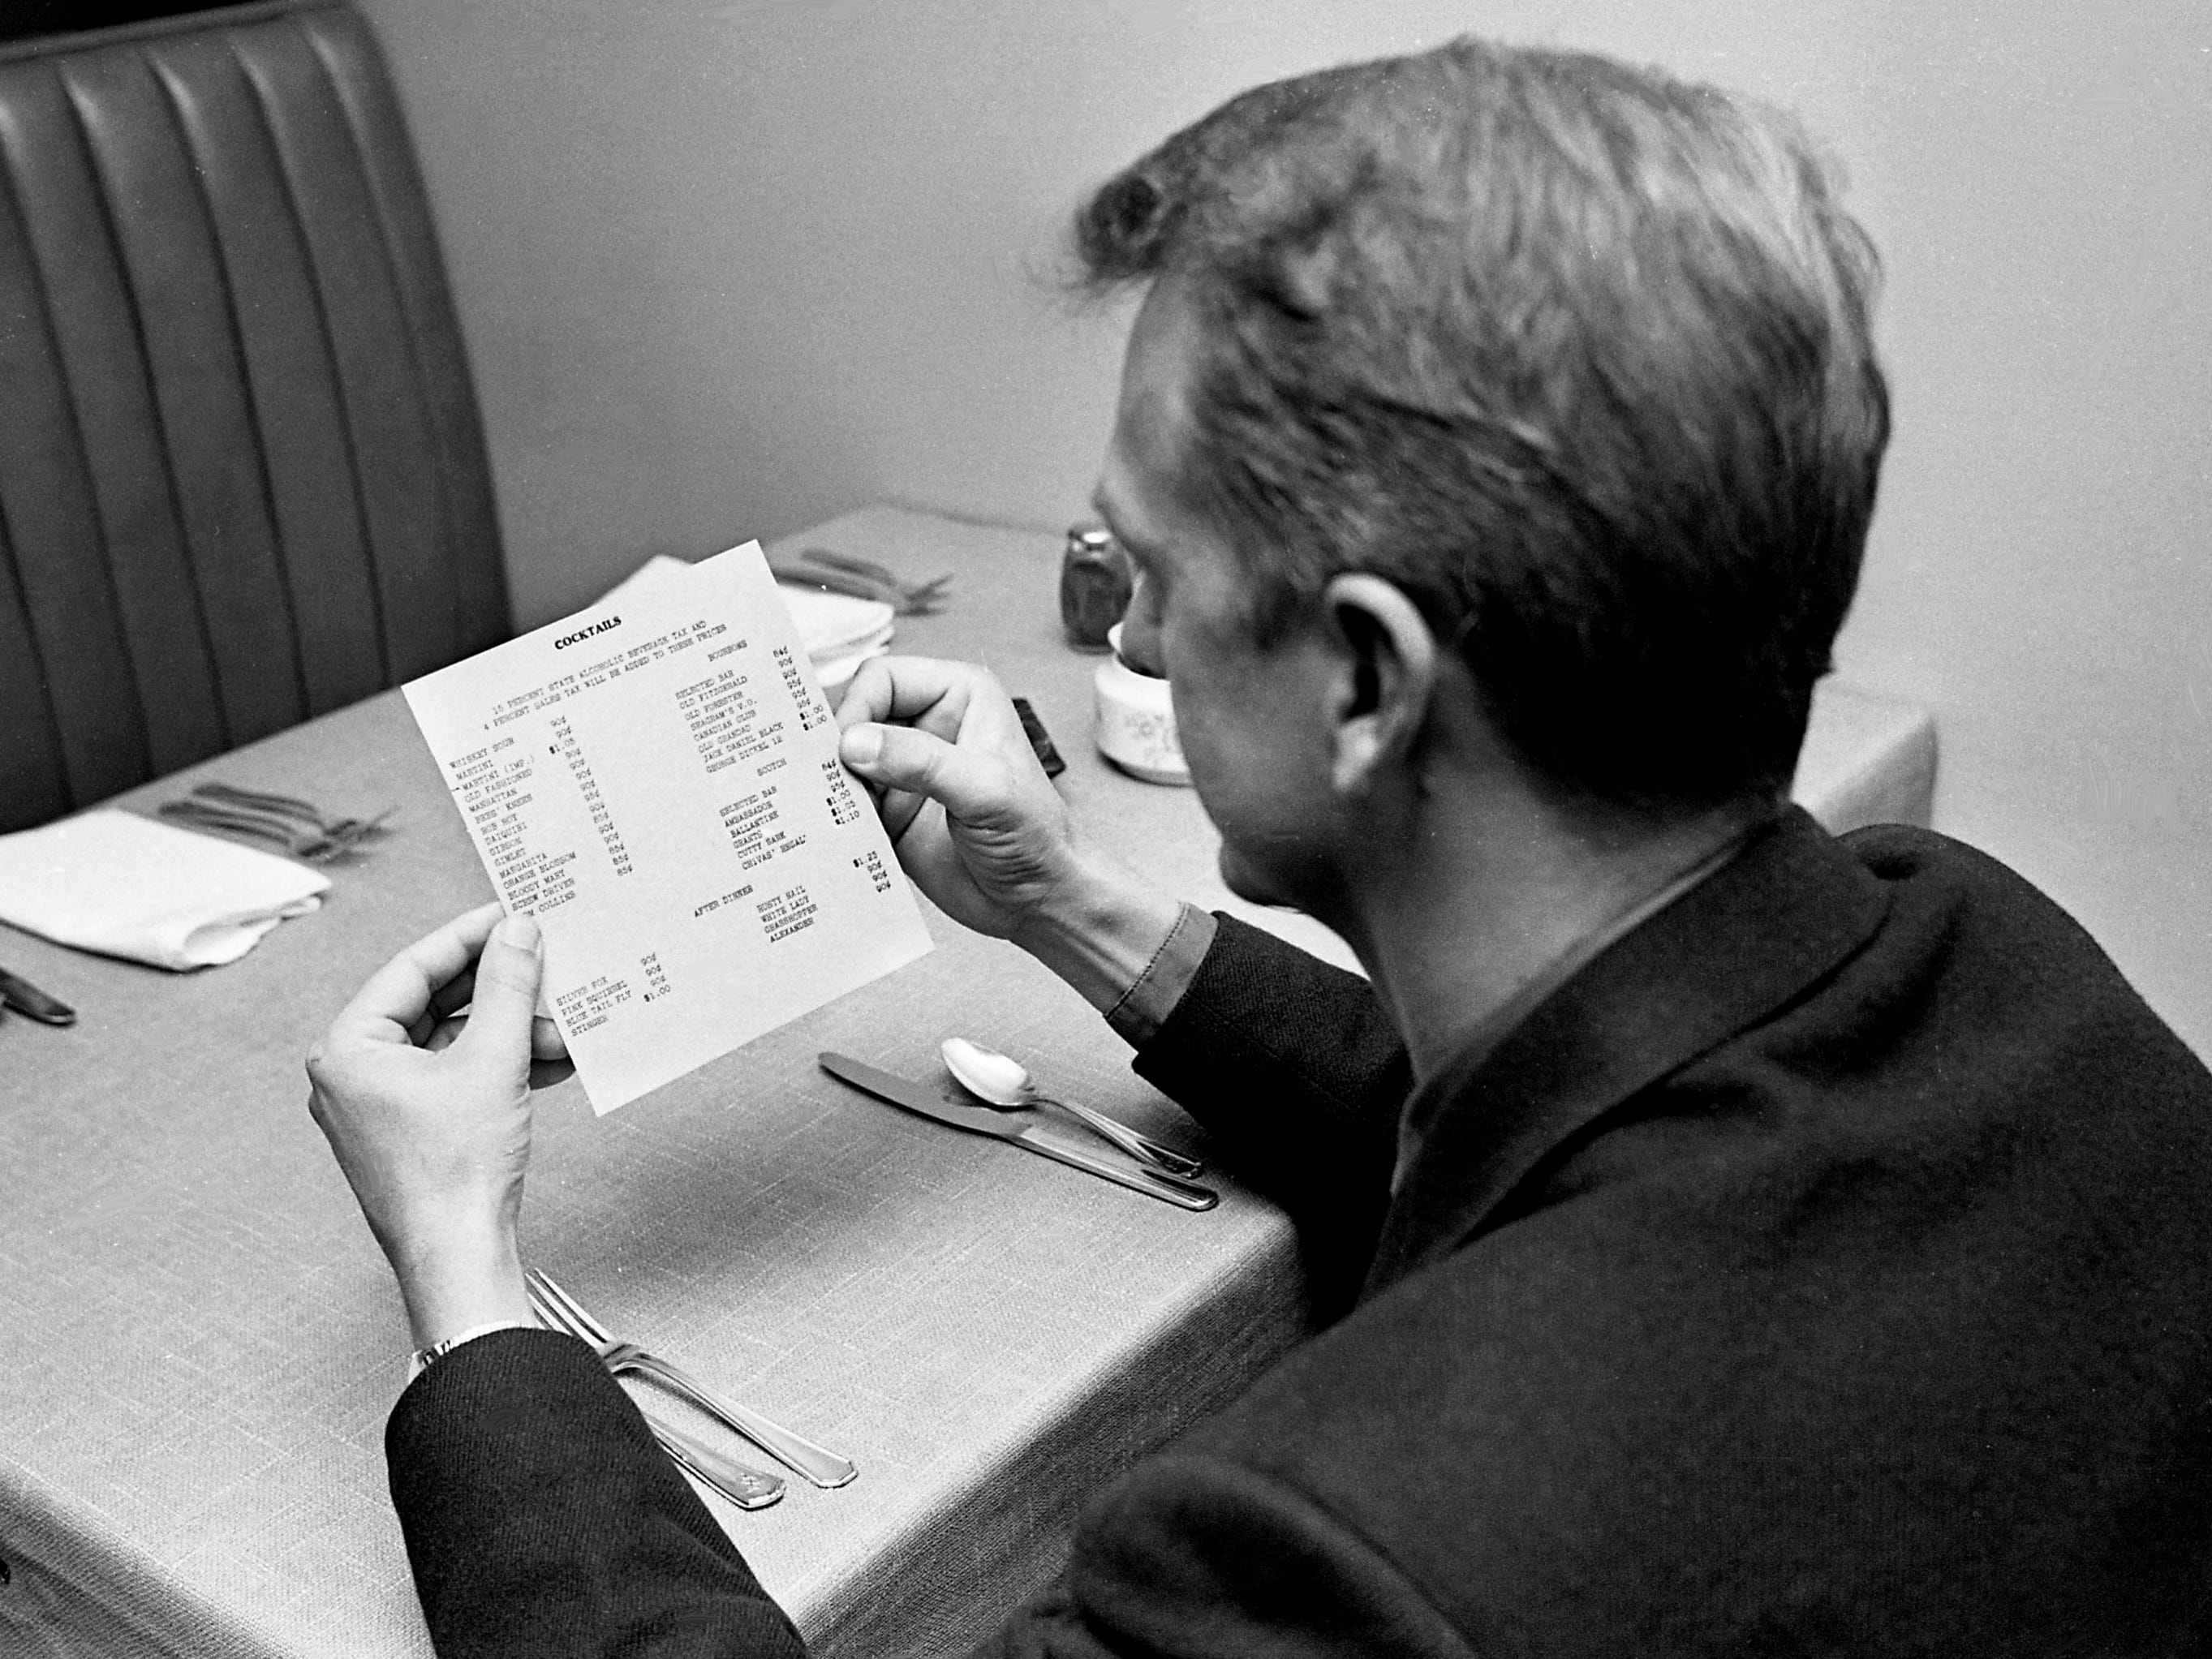 Don Dickerson, 32, the first Nashvillian to buy a mixed drink here legally, carefully inspects a cocktail menu at the Cross Keys Restaurant Nov. 16, 1967. The state Alcoholic Beverage Commission approved licenses for five applicants in the Nashville area recently.